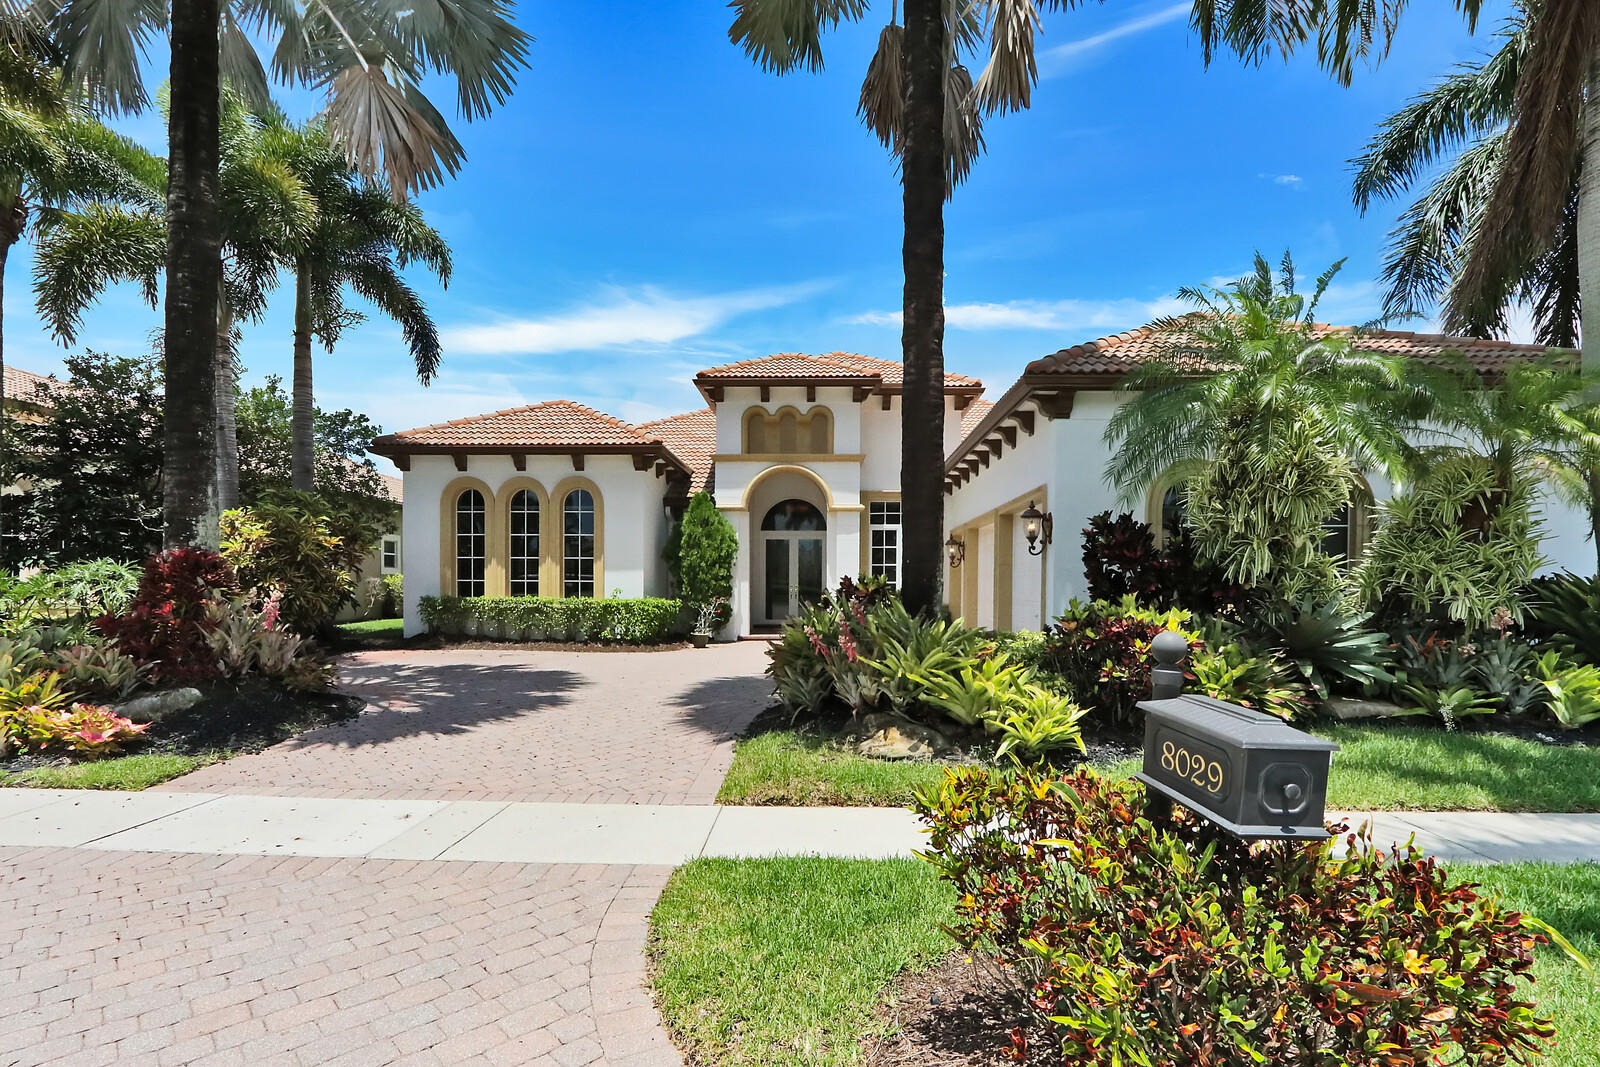 Home for sale in Ibis Golf & Cc - Crane's Pointe West Palm Beach Florida